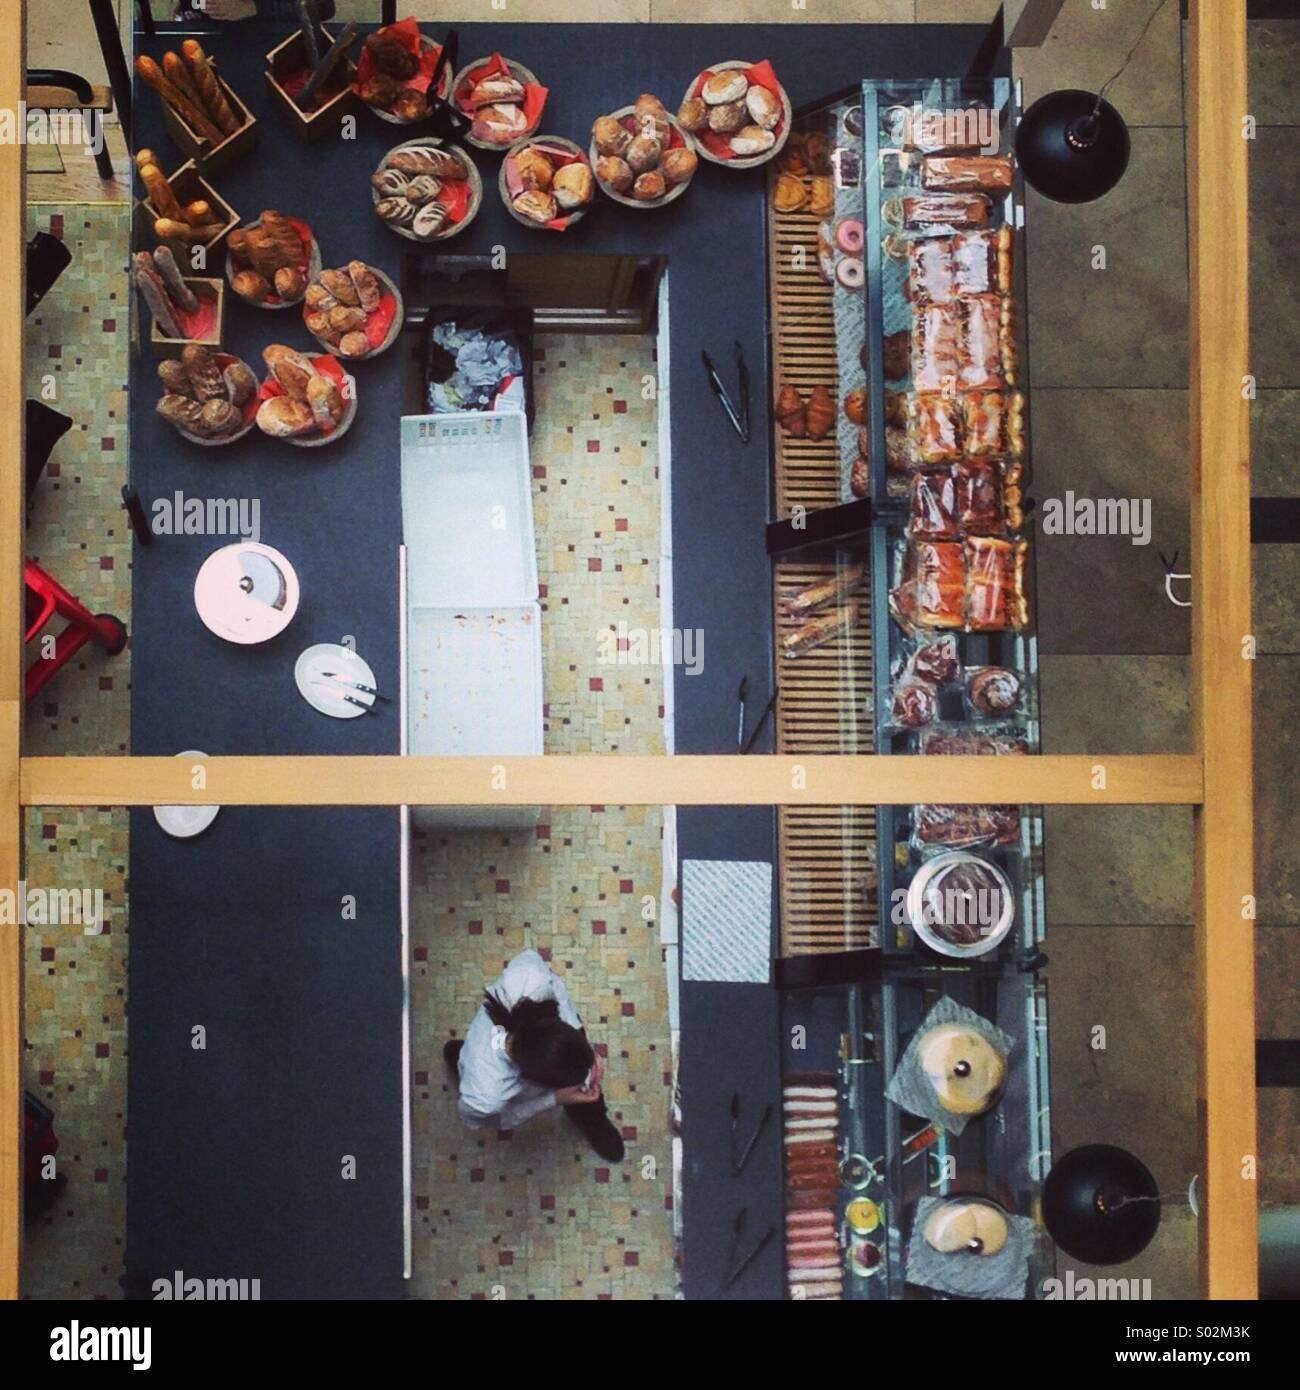 Bird eye view cafe shop - different perspective - ABC mall - Stock Image